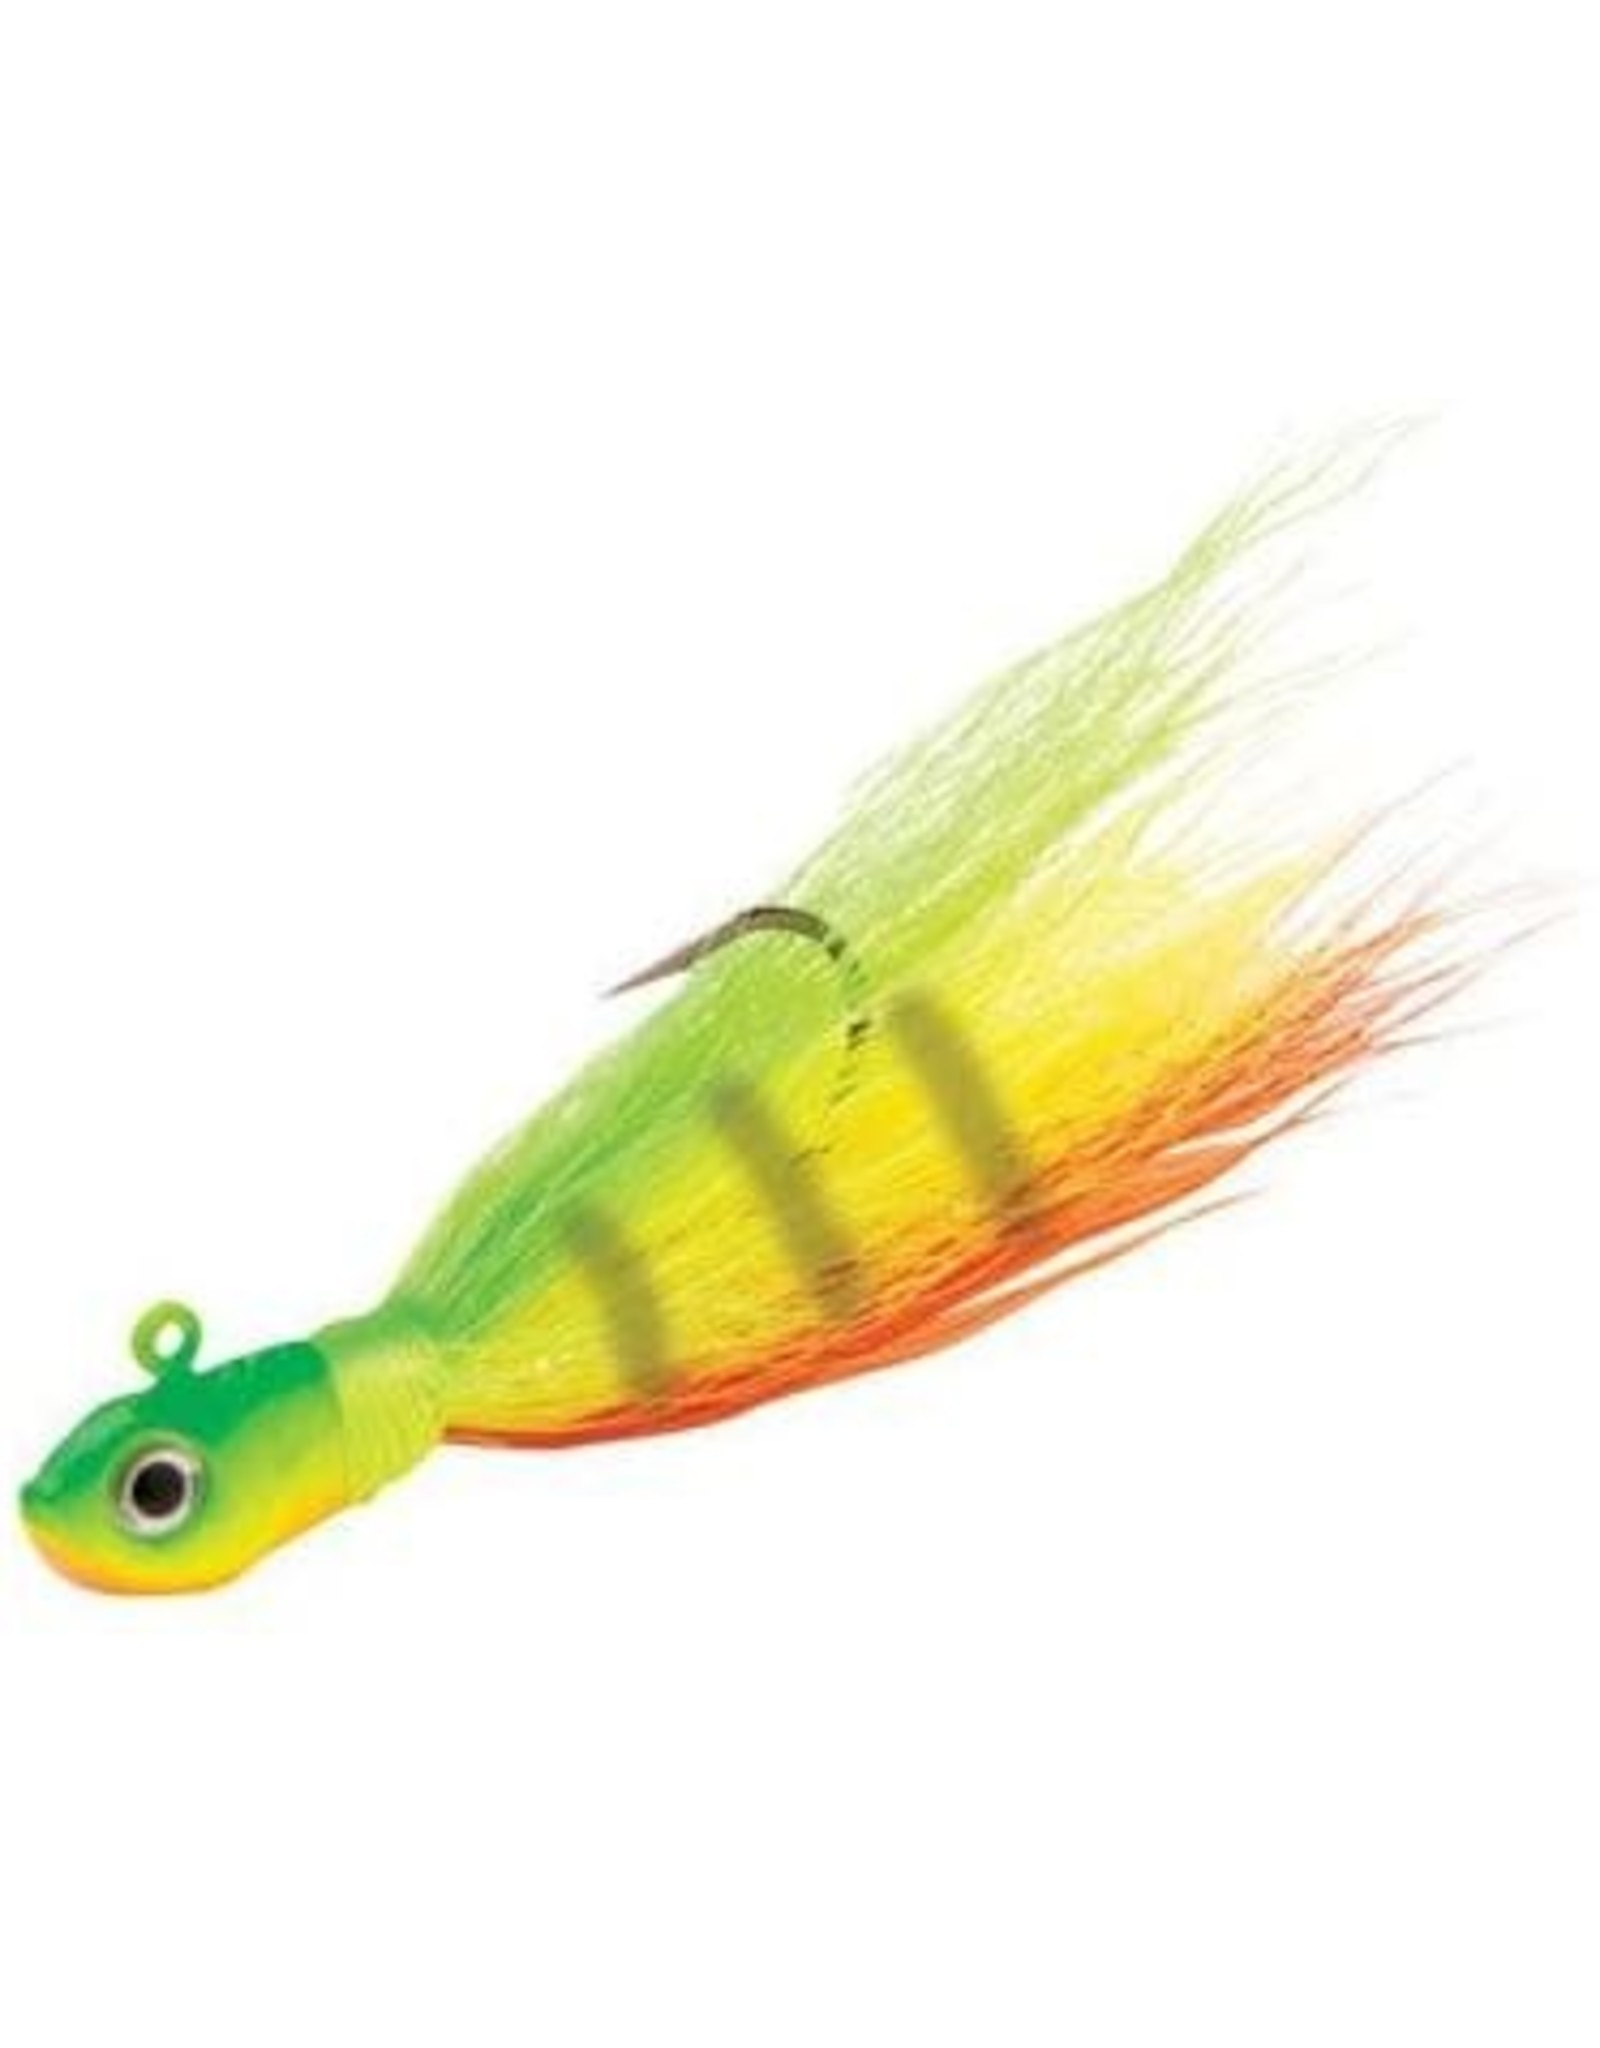 Northland Northland Buck-a-Roo Jig Lure - P-11970